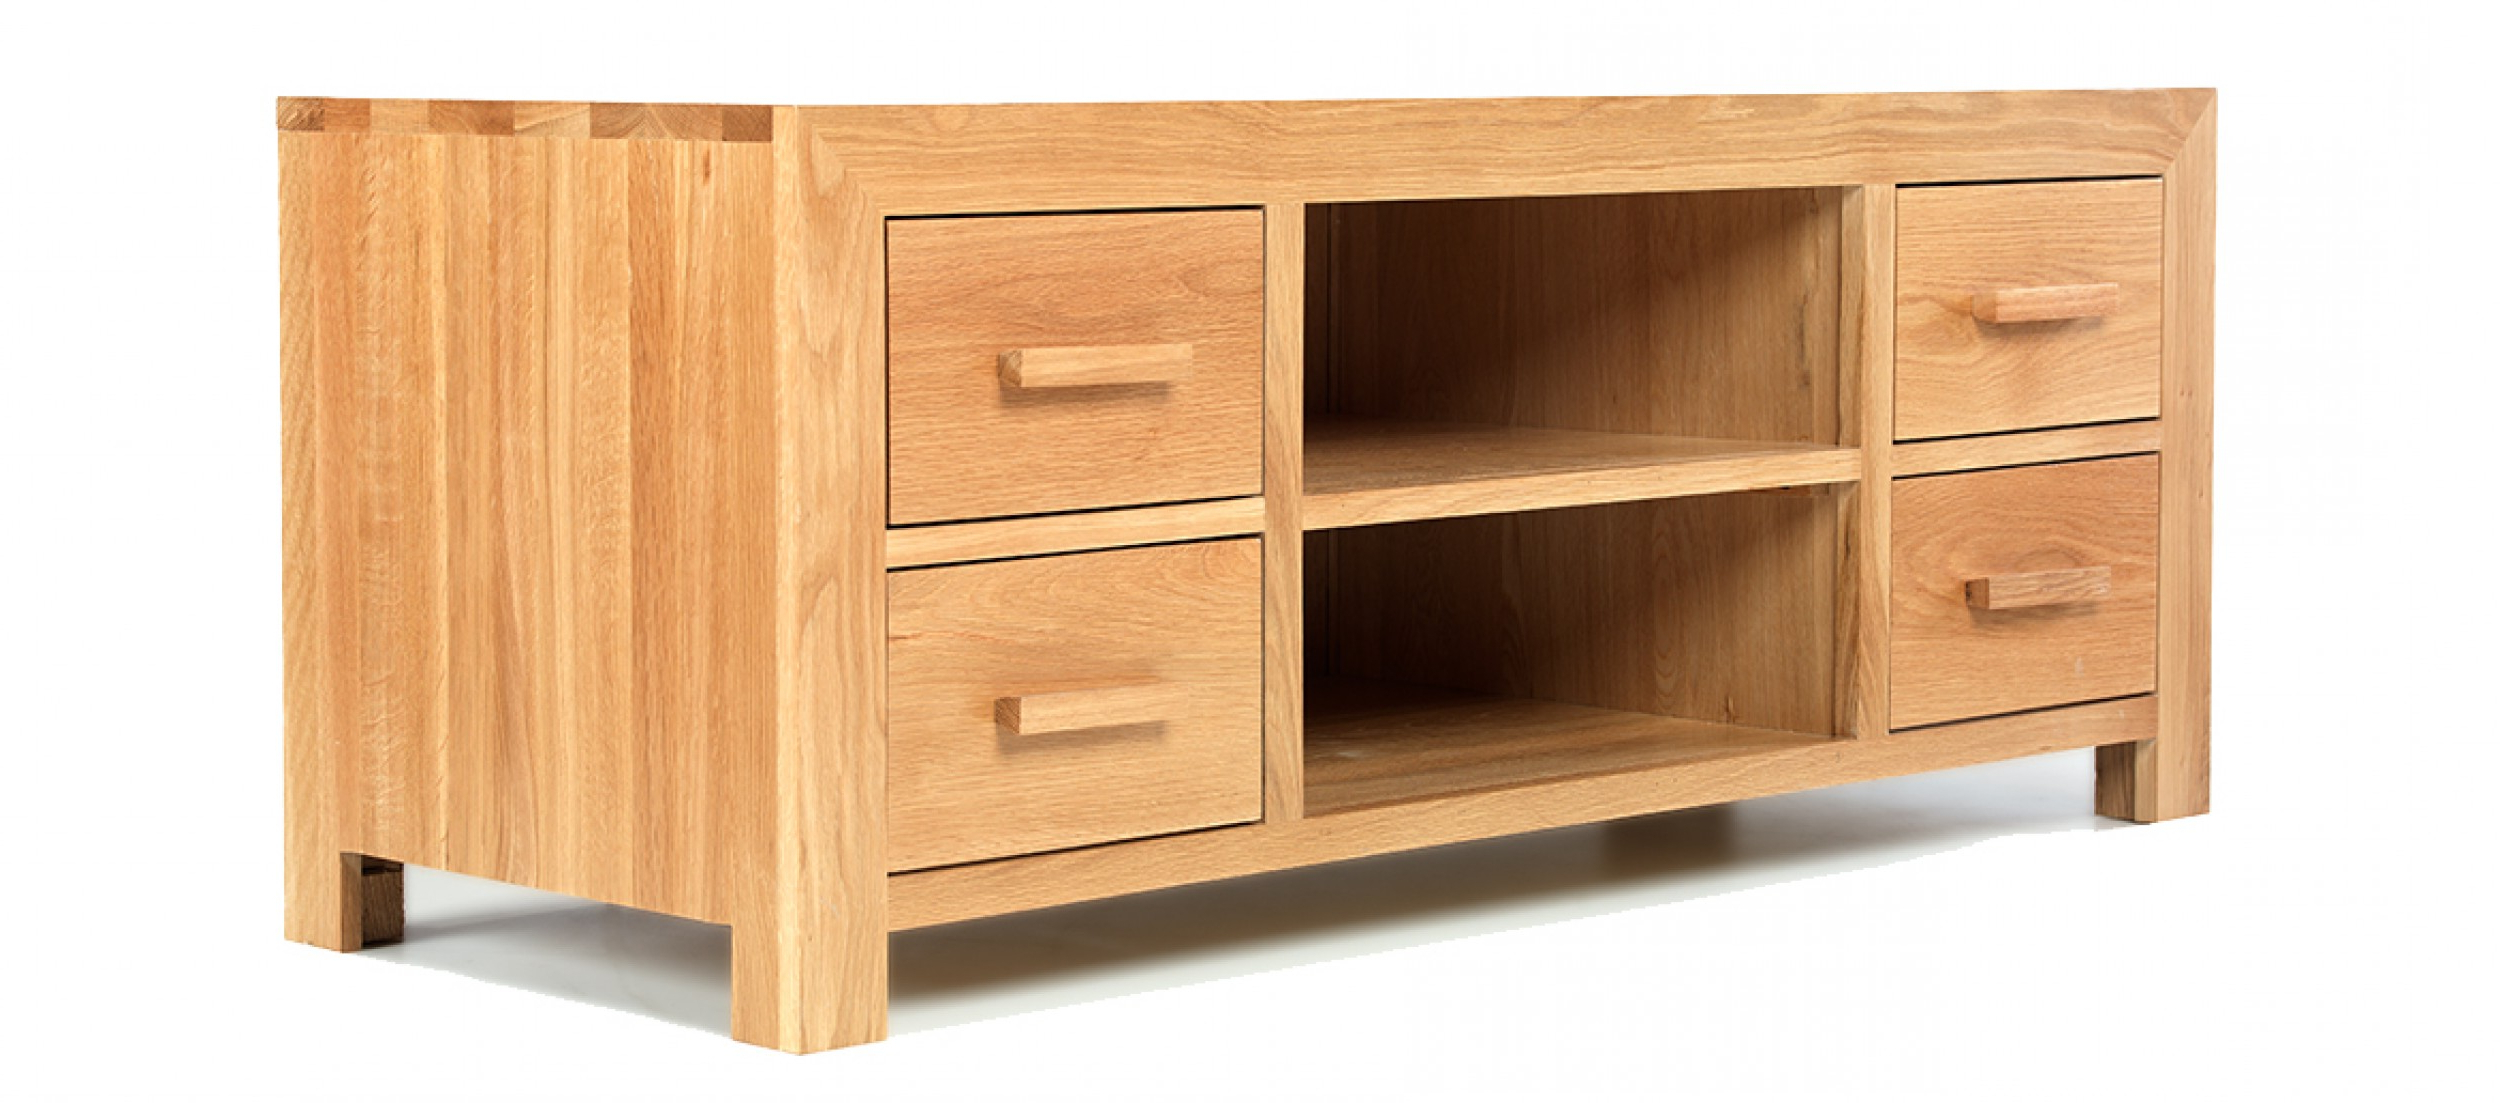 Quercus Living Intended For Oak Tv Cabinets With Doors (Gallery 9 of 20)